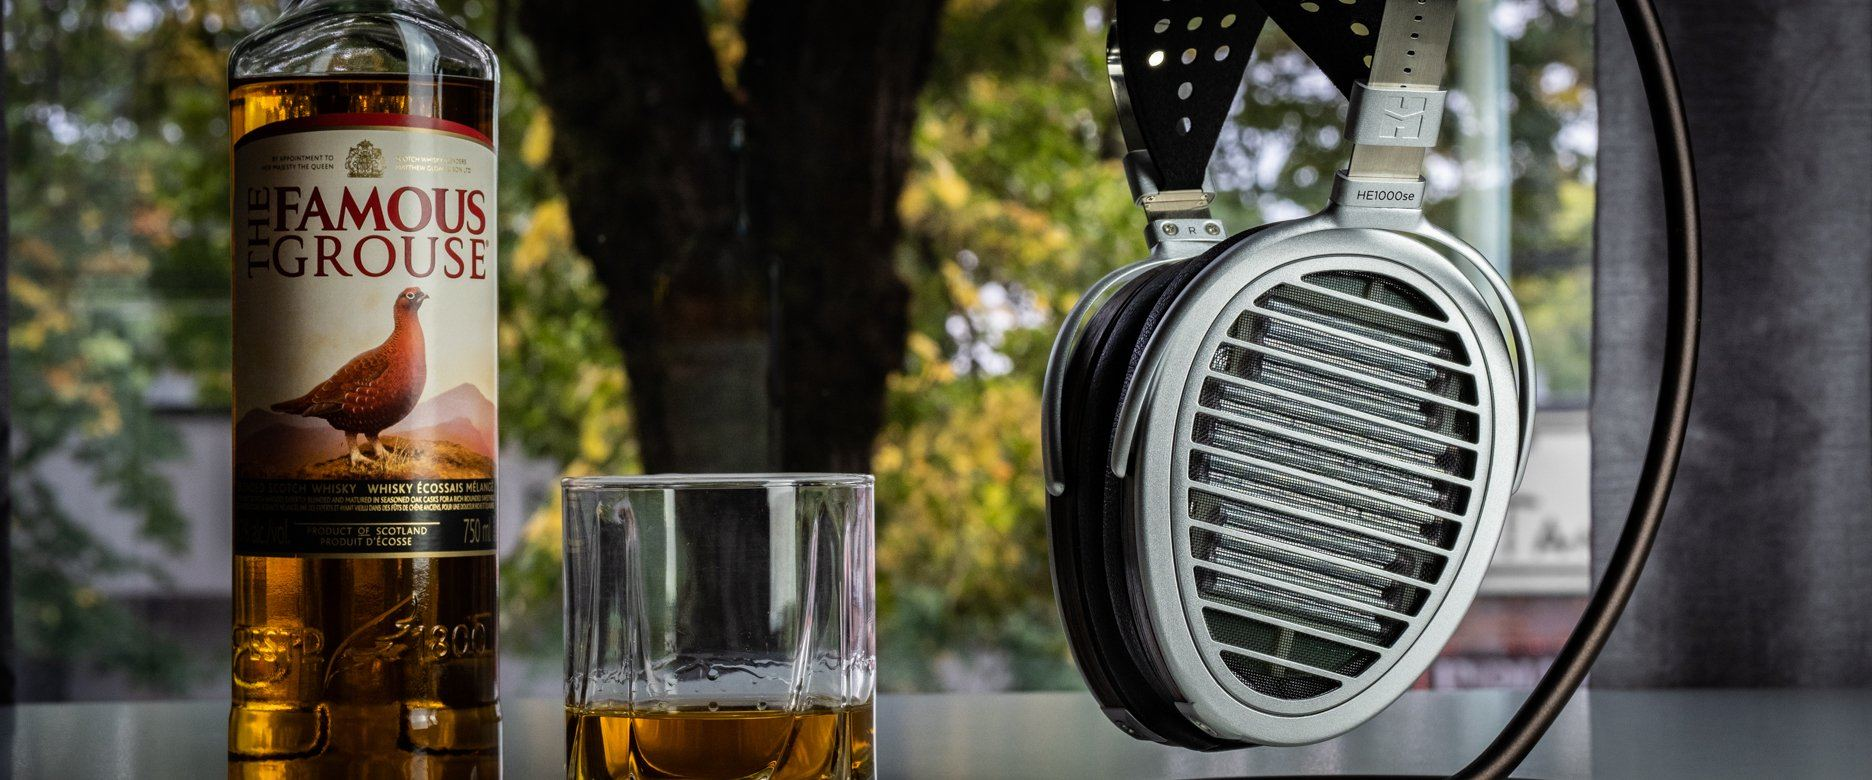 Hifiman HE1000se Review - A Planar Like Nothing Else